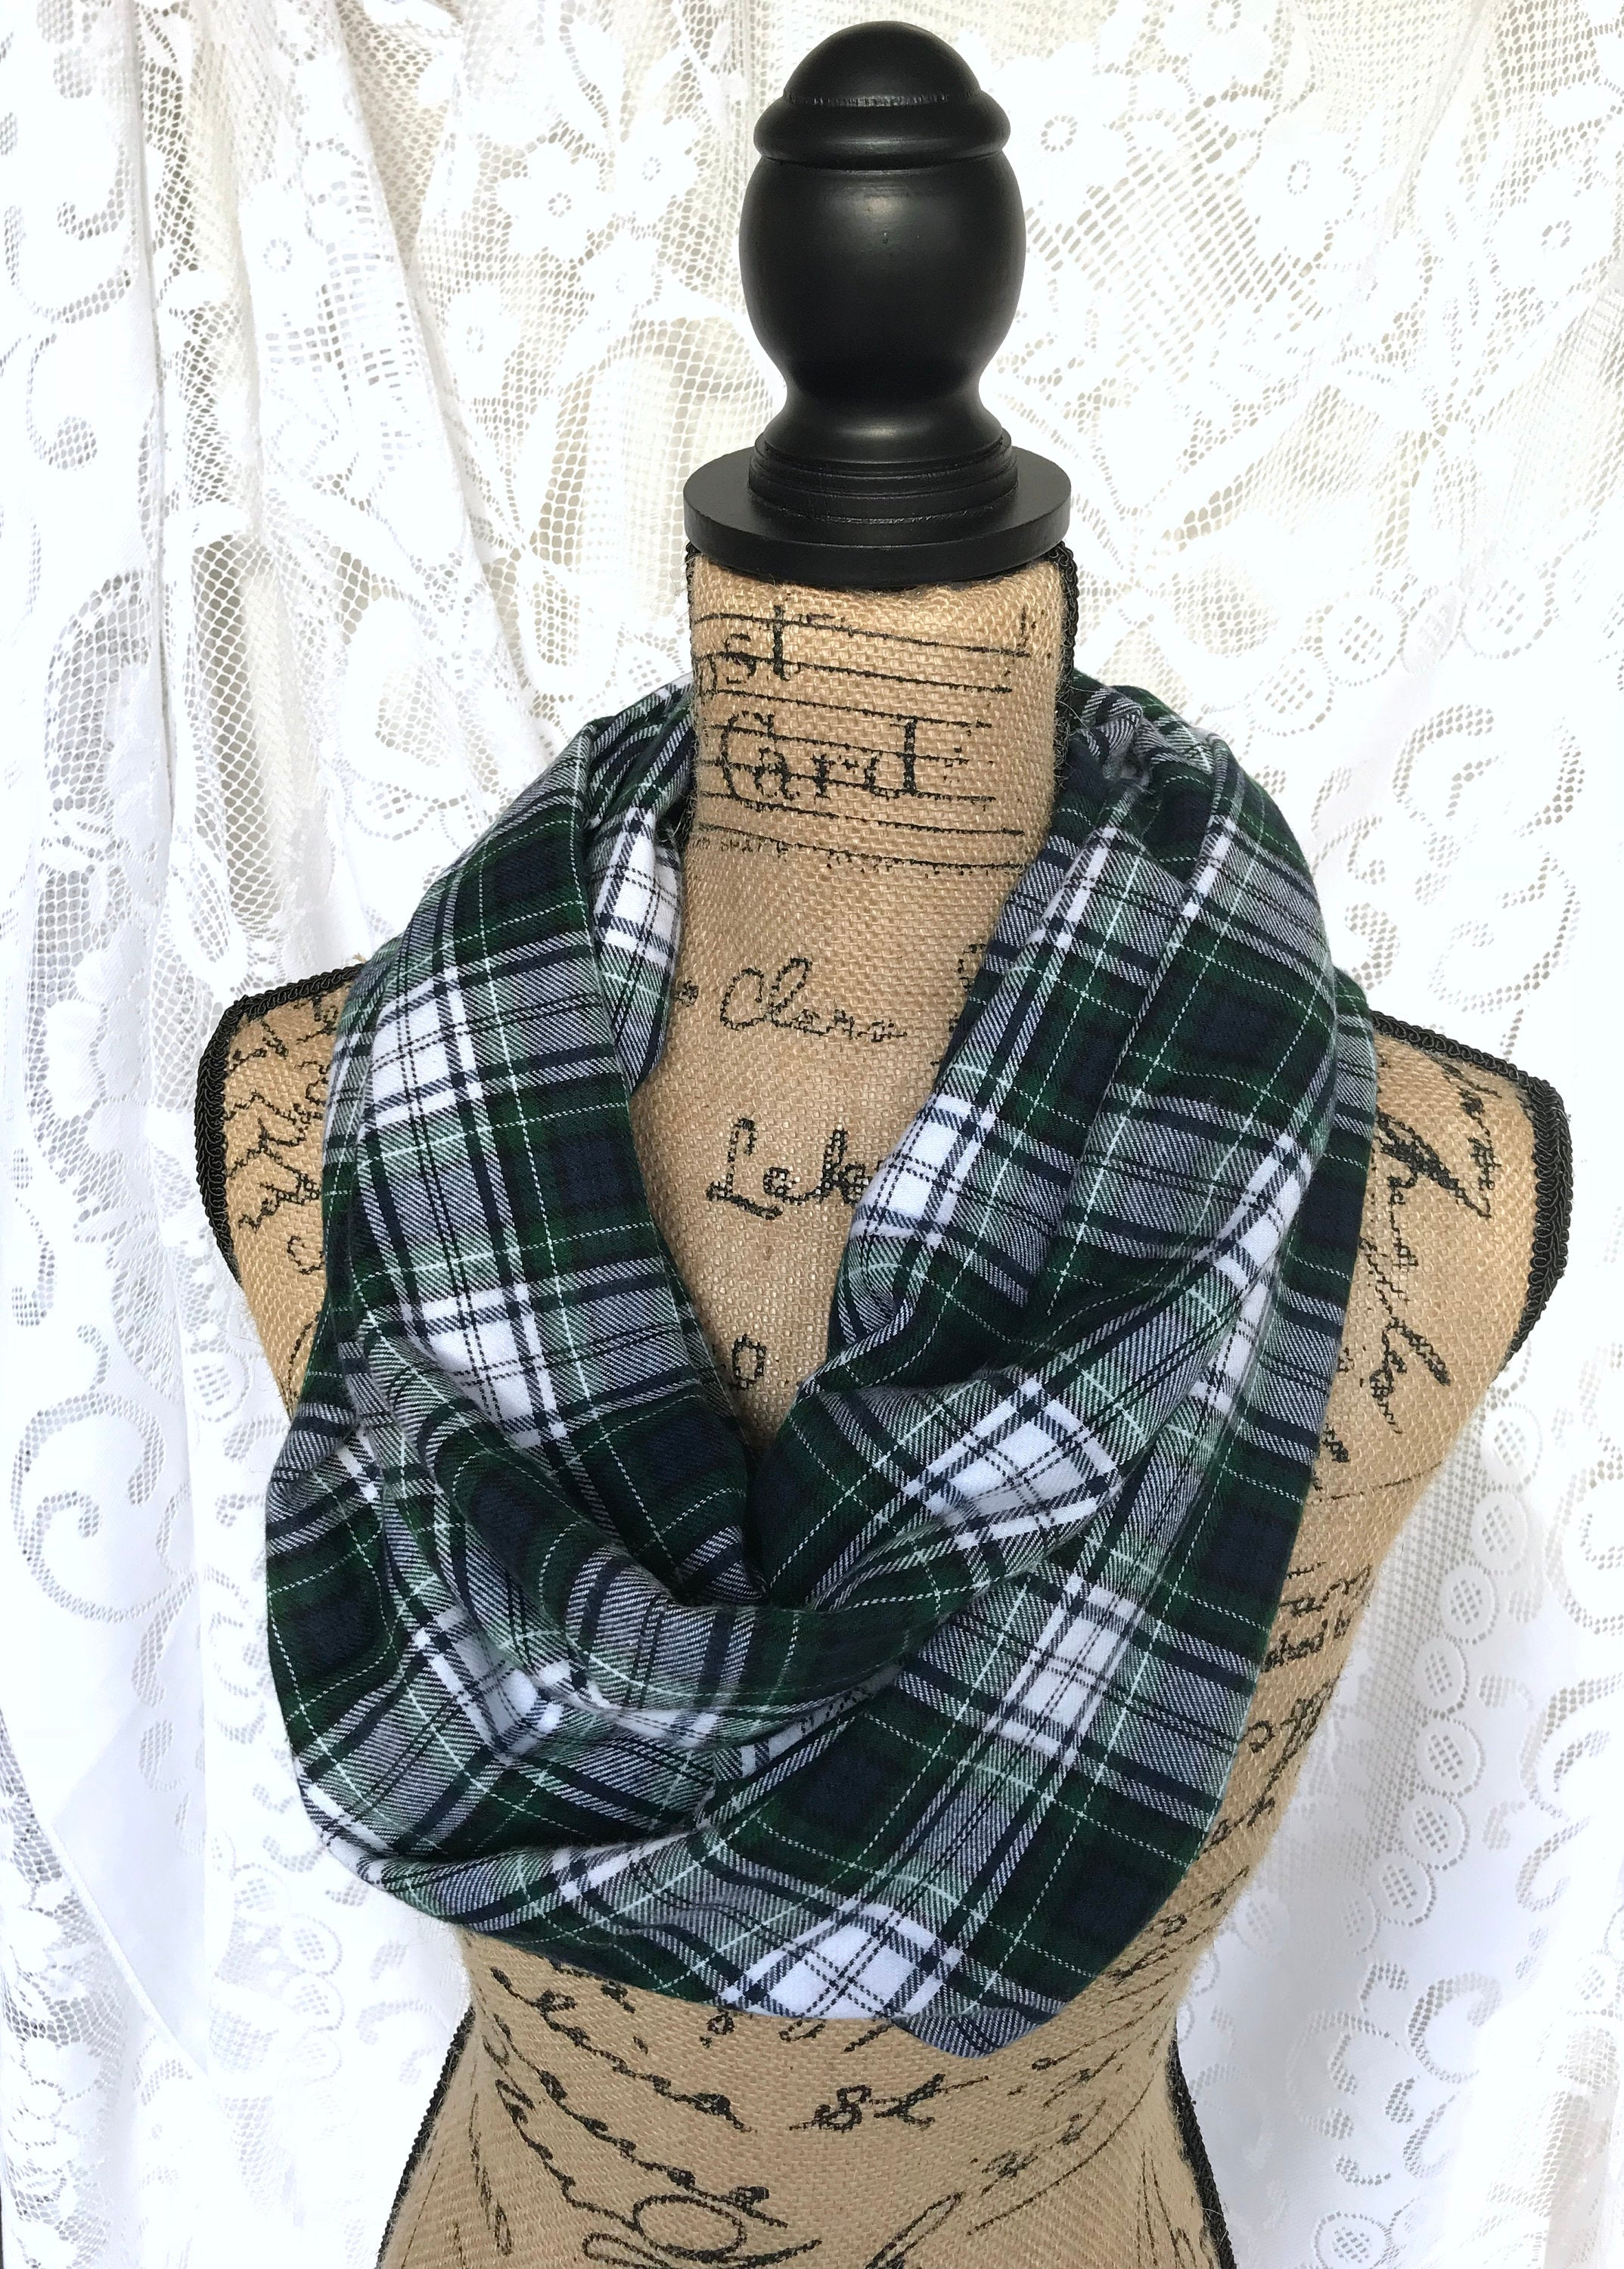 Modern Dress Black Watch Tartan in Forest Green, Navy Blue, and White Flannel Plaid Infinity or Blanket Scarf Classic Tartan Wrap Shawl Cowl